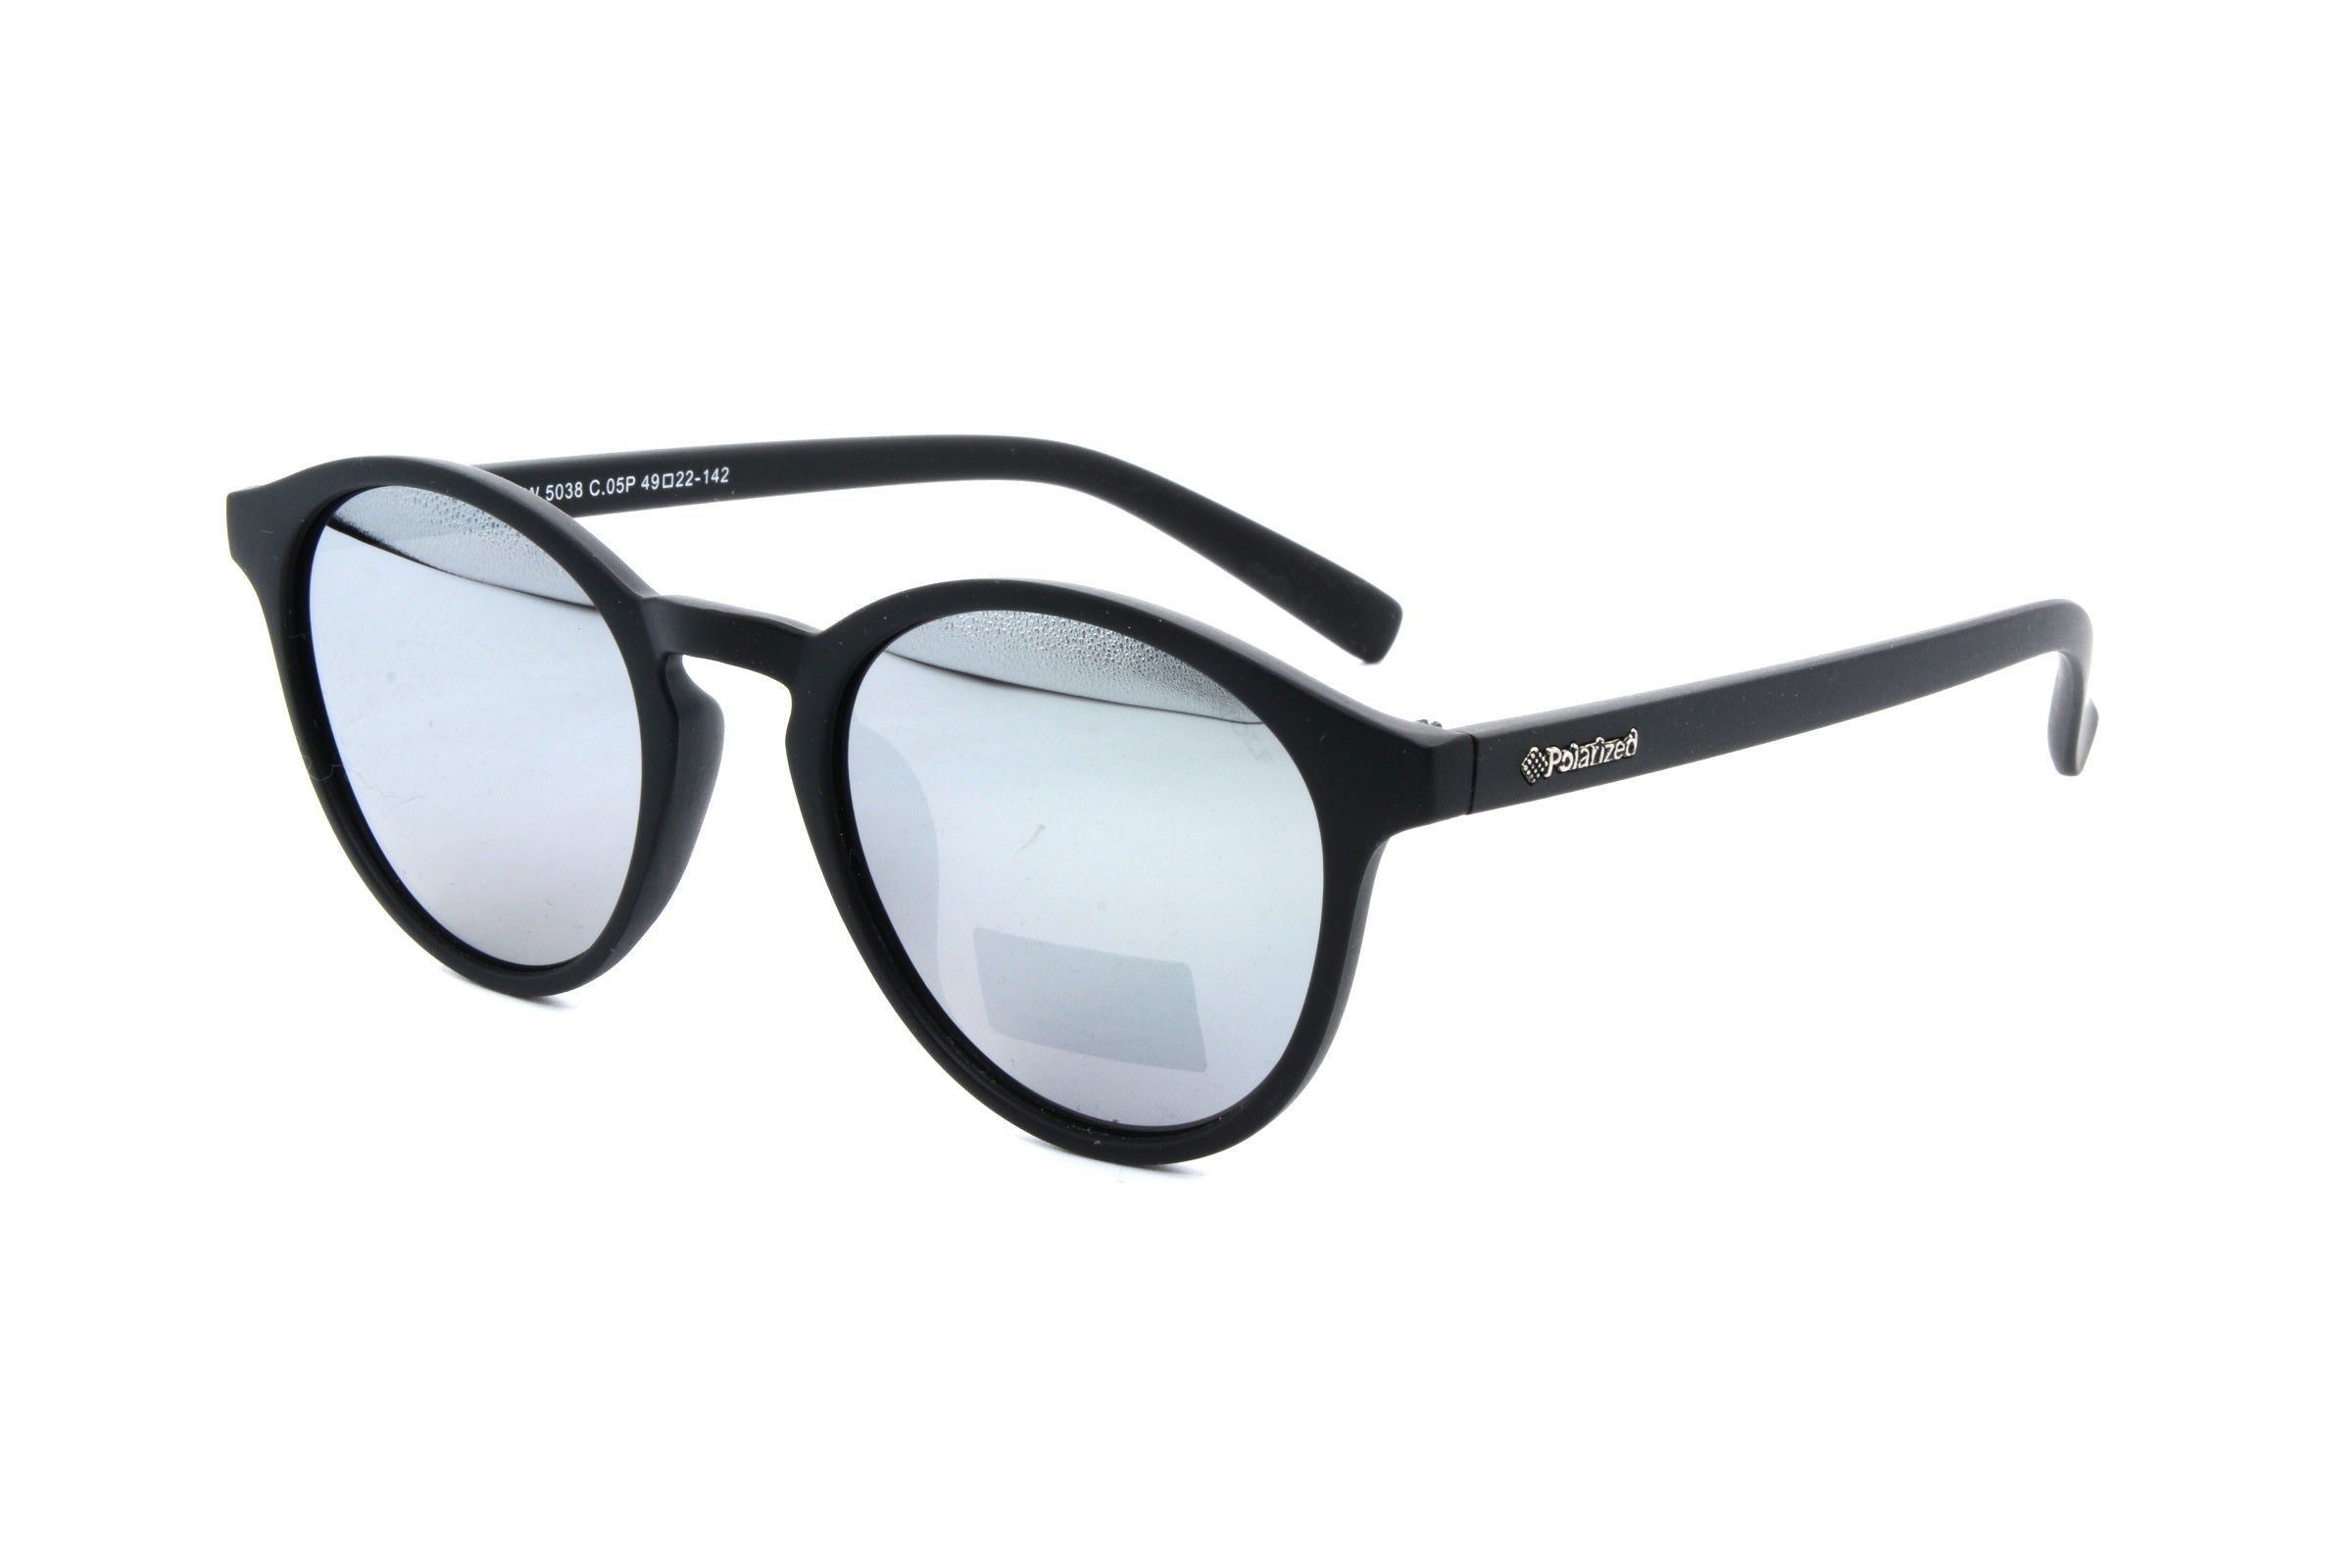 Grey Wolf sunglasses 5038 C05P